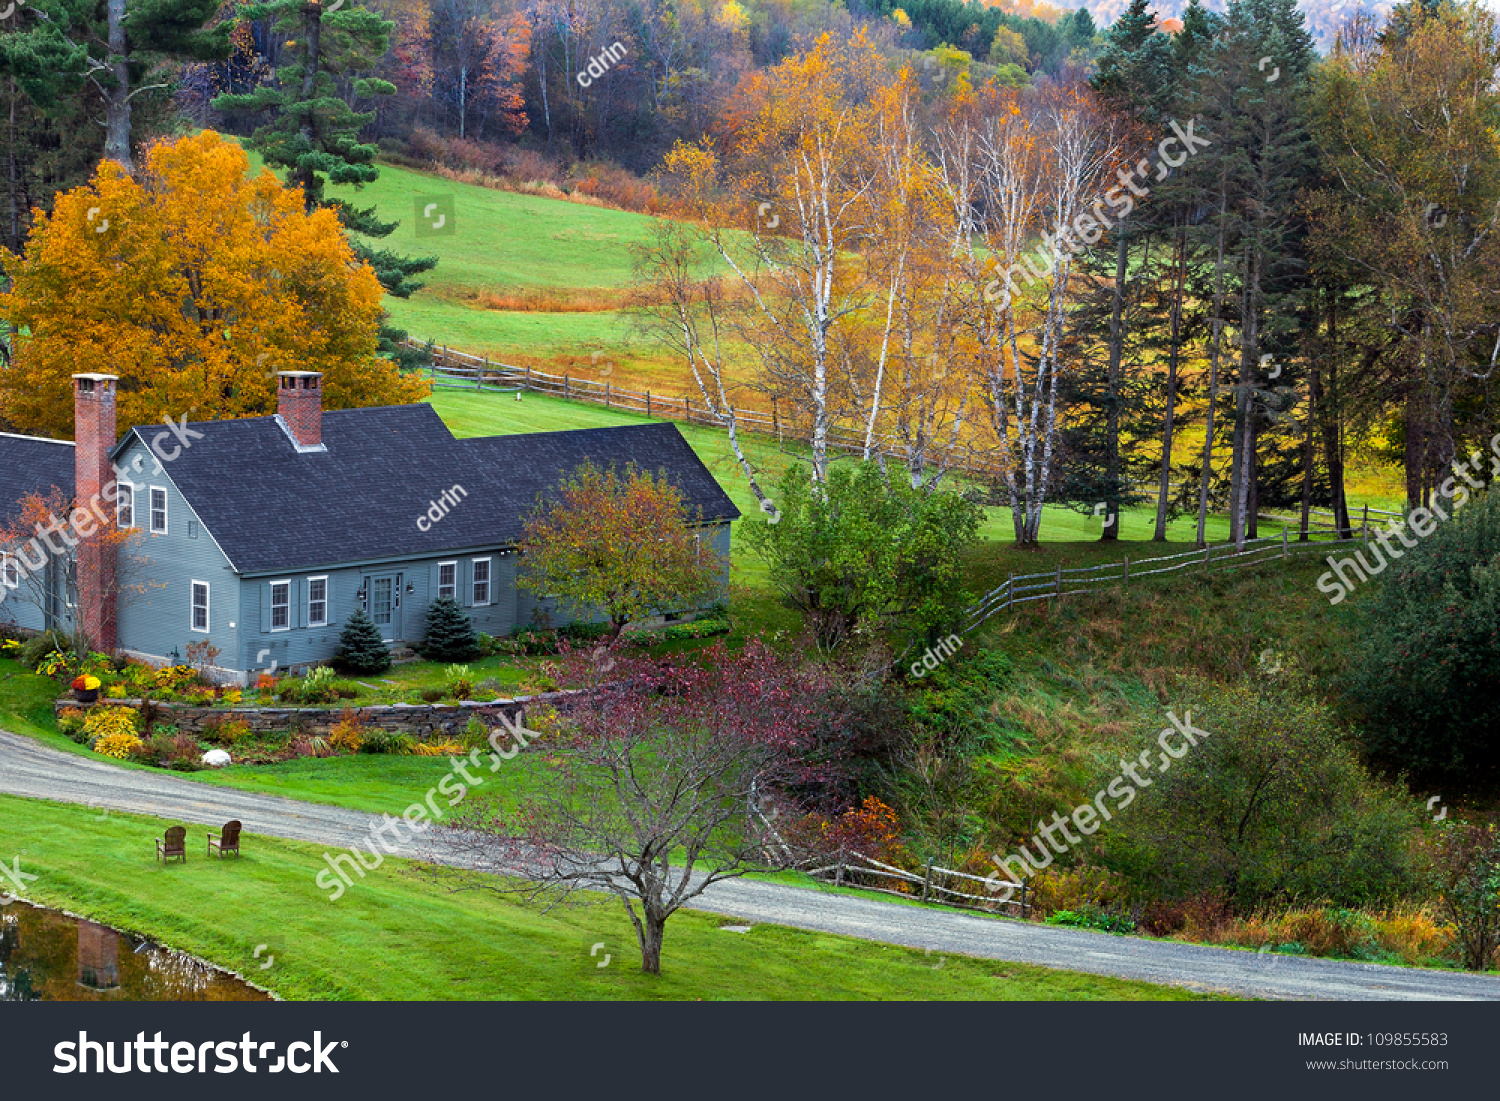 Farm House Green Fields Colorful Fall Stock Photo (Royalty Free ...